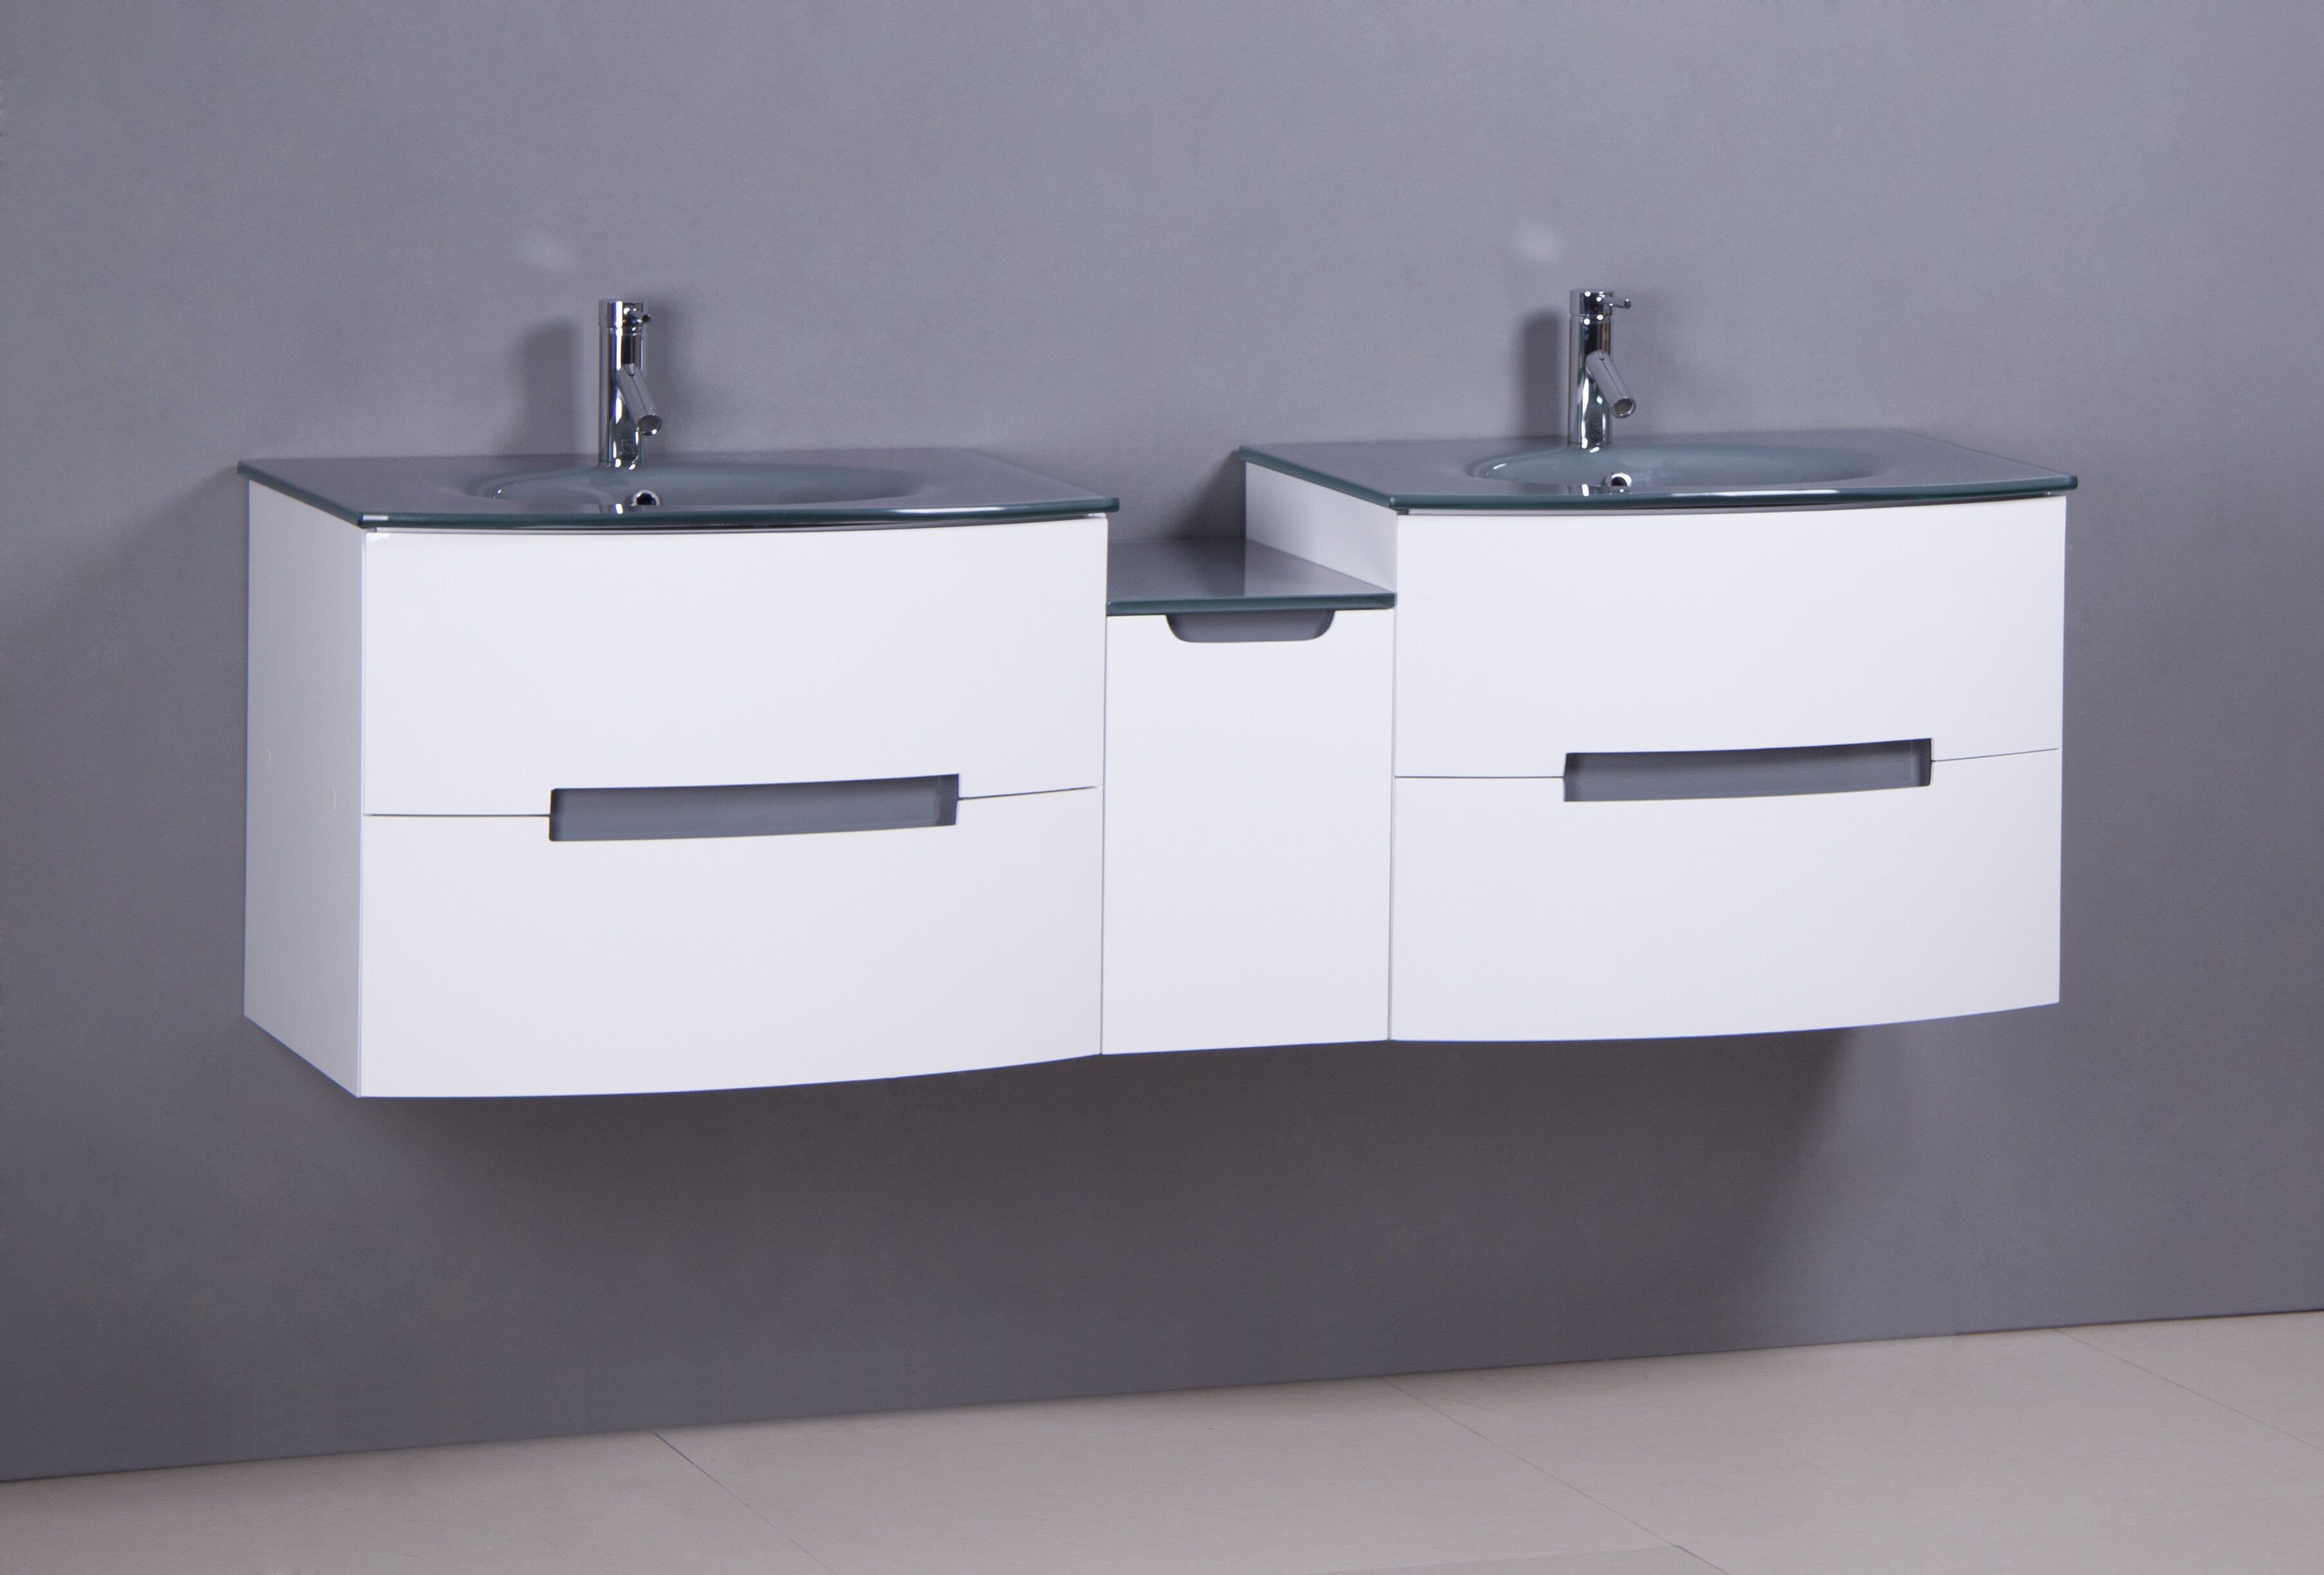 Orren Ellis Sandstrom 72 Wall Mounted Double Bathroom Vanity Set Wayfair